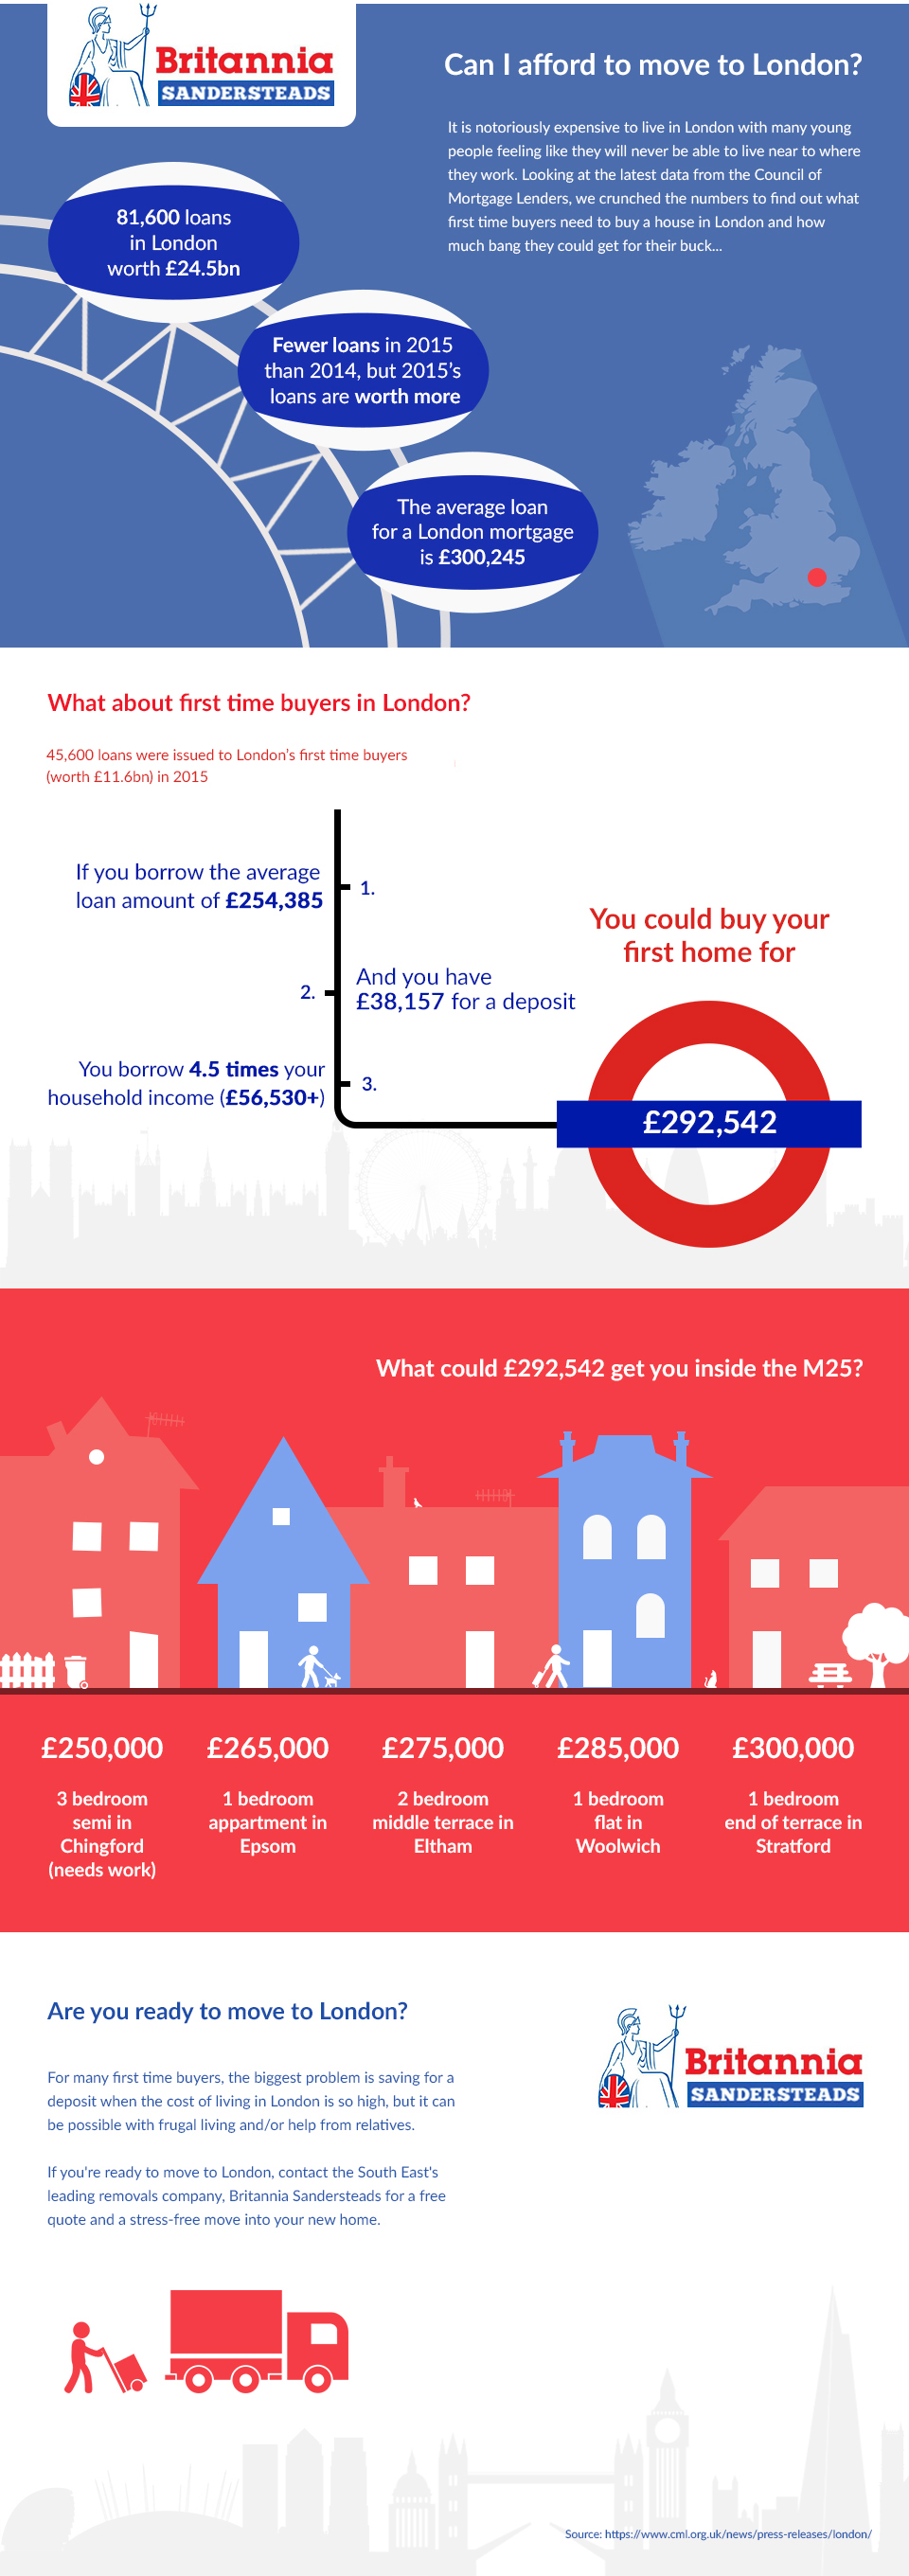 Can You Afford to Buy a Home in London? infographic